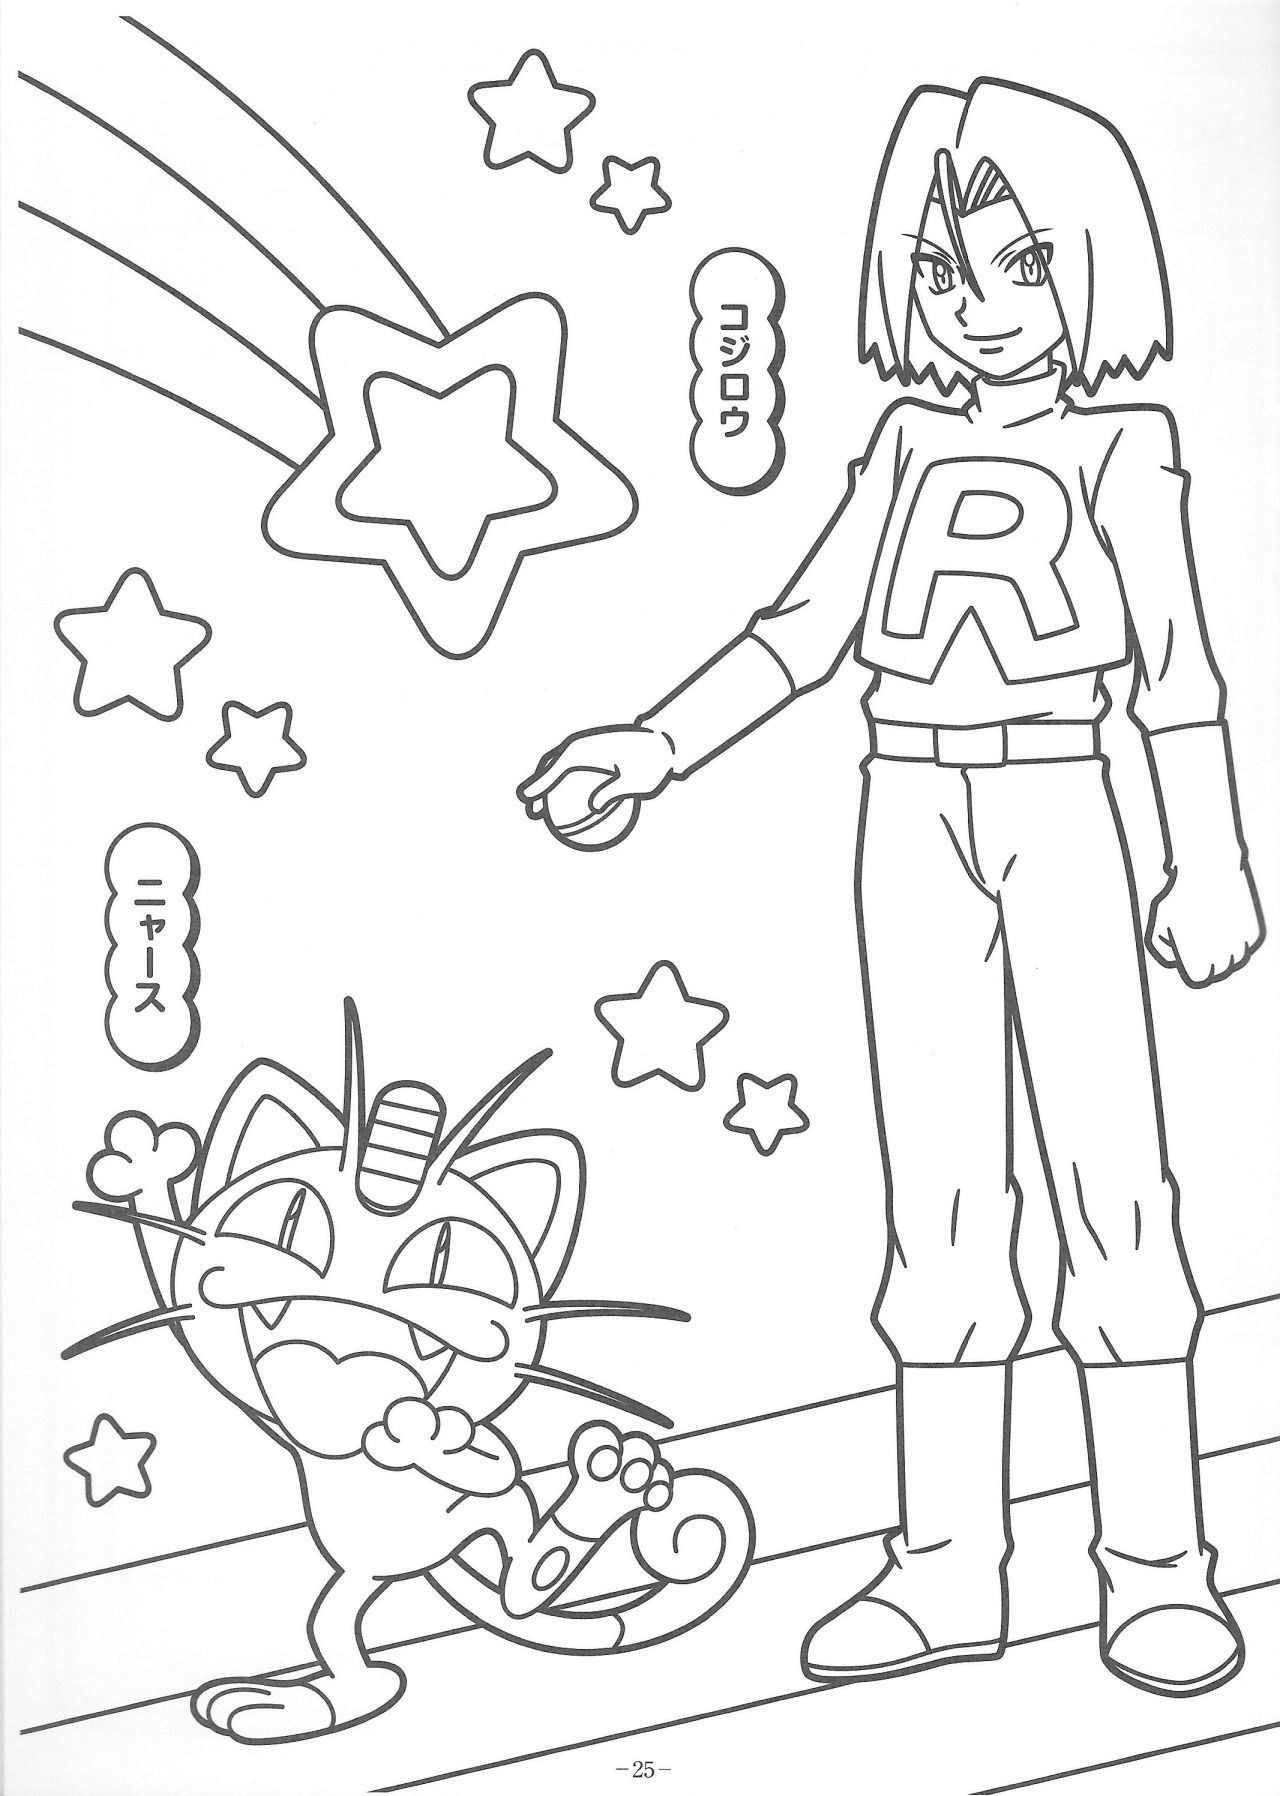 Team Rocket Coloring Book Sailor Moon Coloring Pages Pokemon Coloring Pages Coloring Books